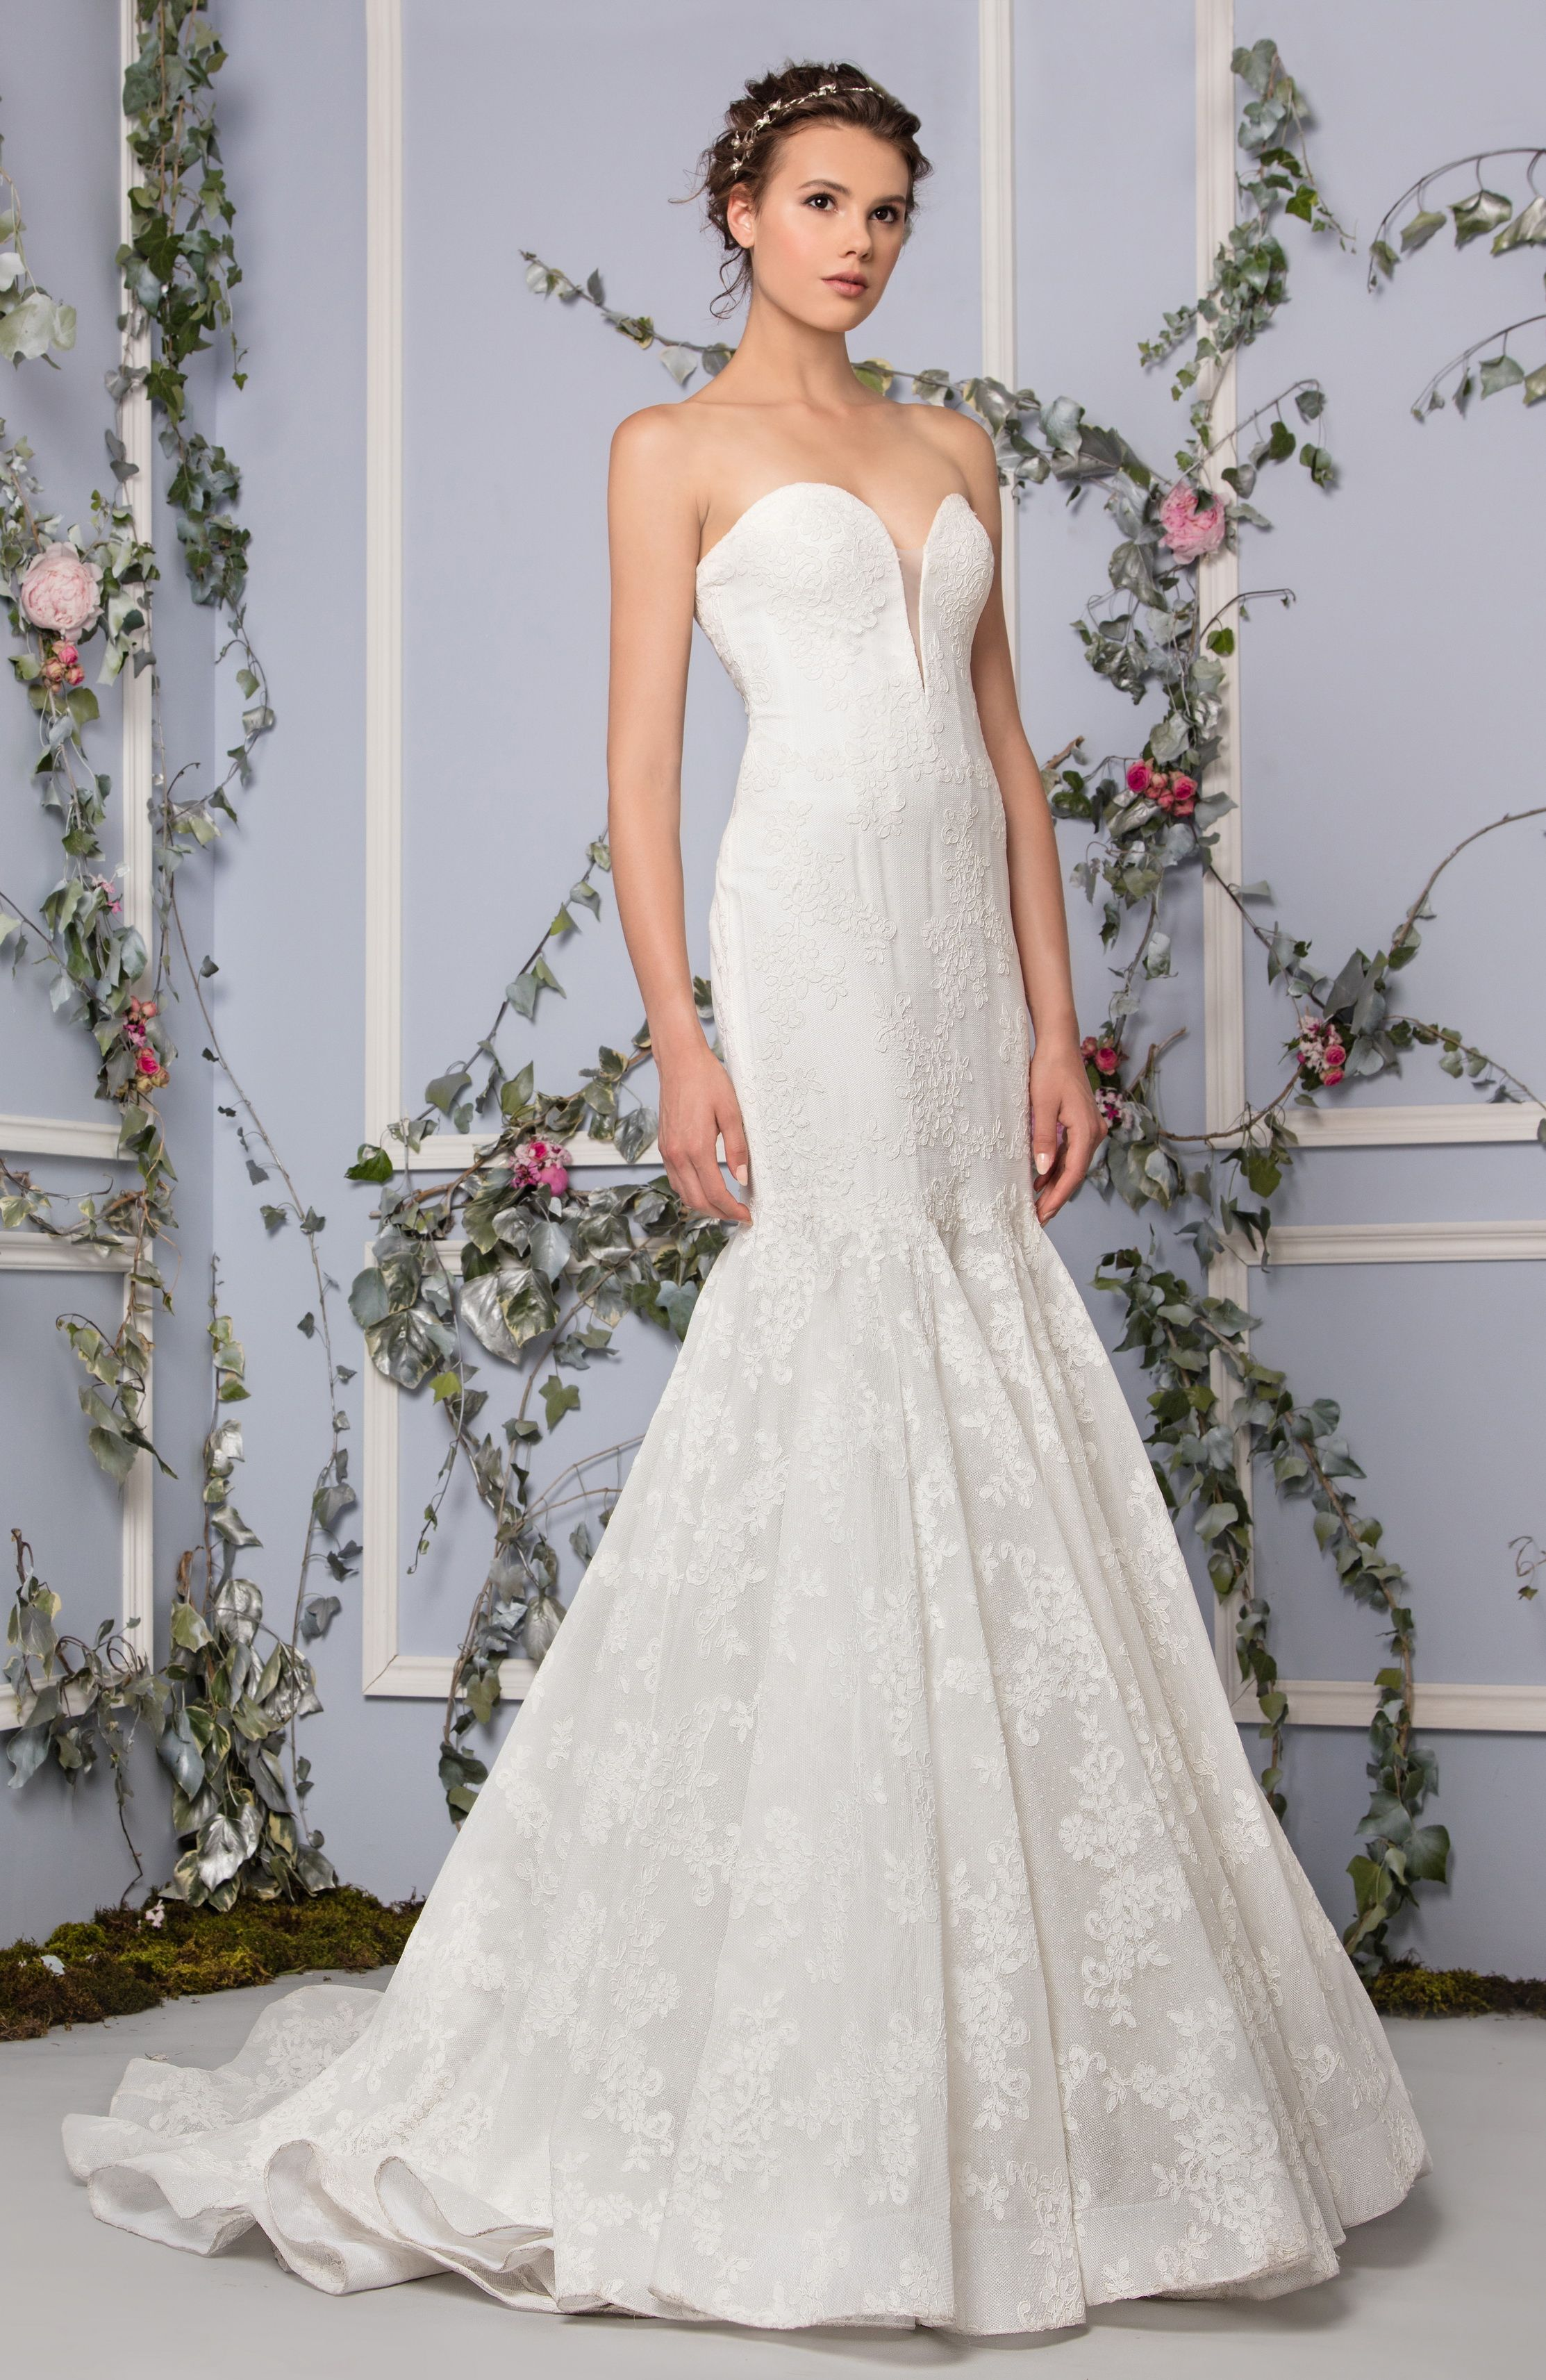 a9129477ba Tony Ward Bridal 2017 l Look 30 l Persephone - Mermaid-cut wedding dress  made of Lace featuring a plunge sweetheart neckline.